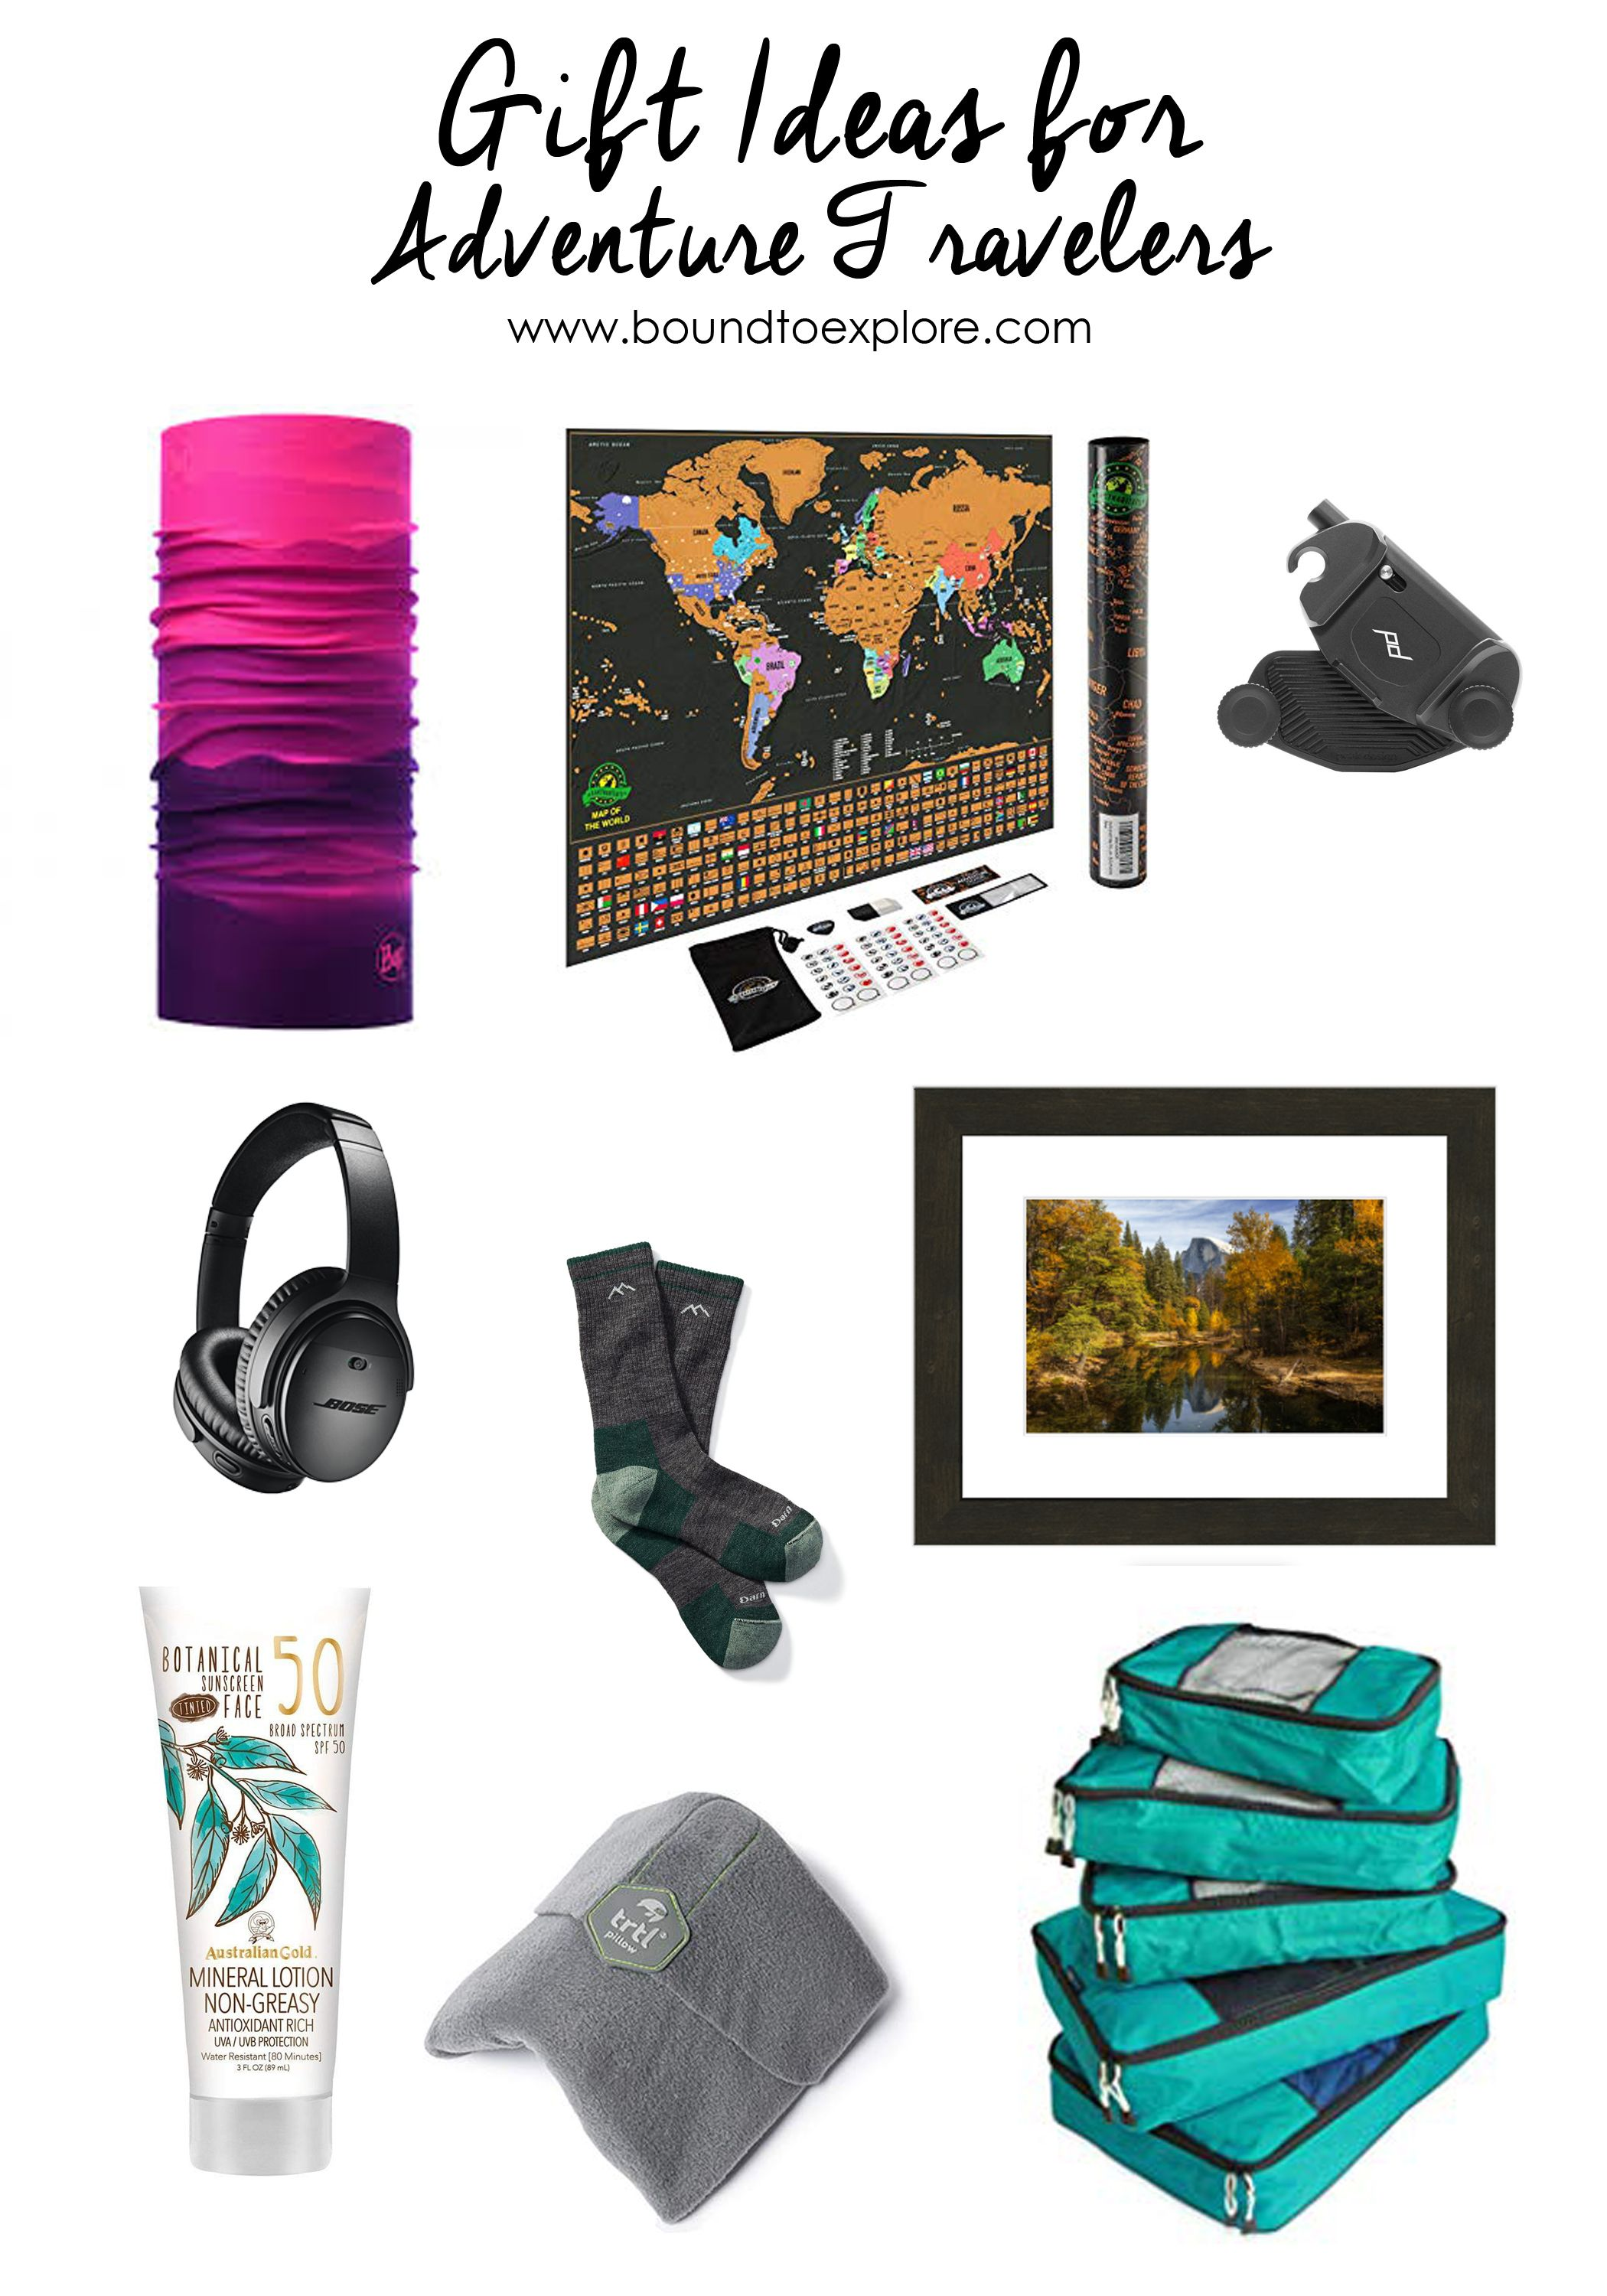 Affordable and luxury gift ideas for adventure travelers